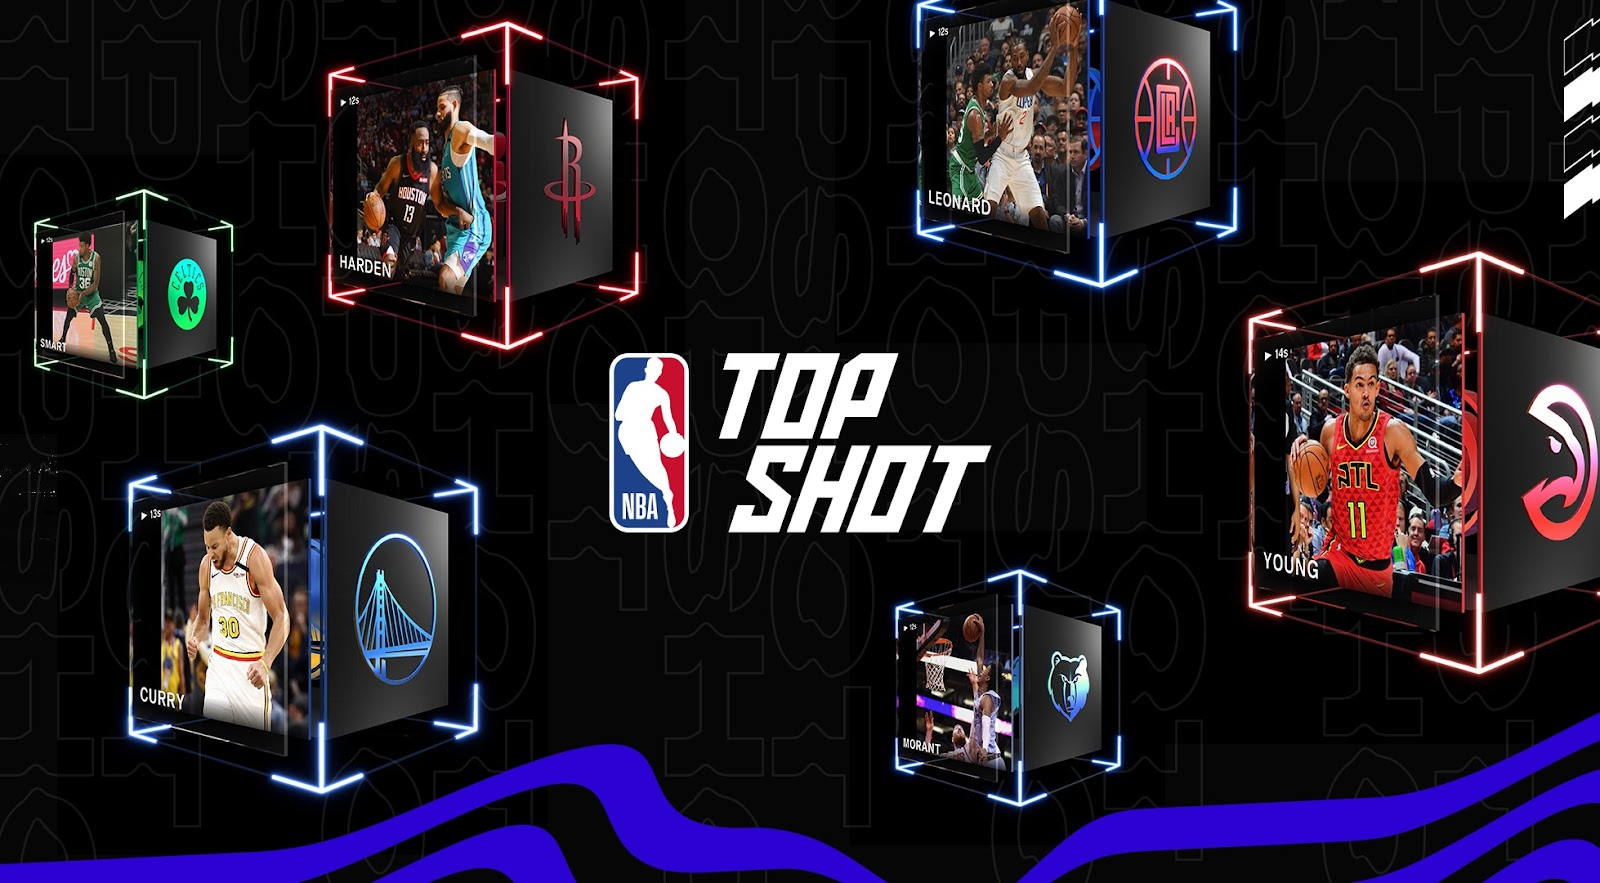 NBA Top Shot NFT | Credit: https://techcrunch.com/2020/05/27/cryptokitties-developer-launches-nba-top-shot-a-new-blockchain-based-collectible-collab-with-the-nba/